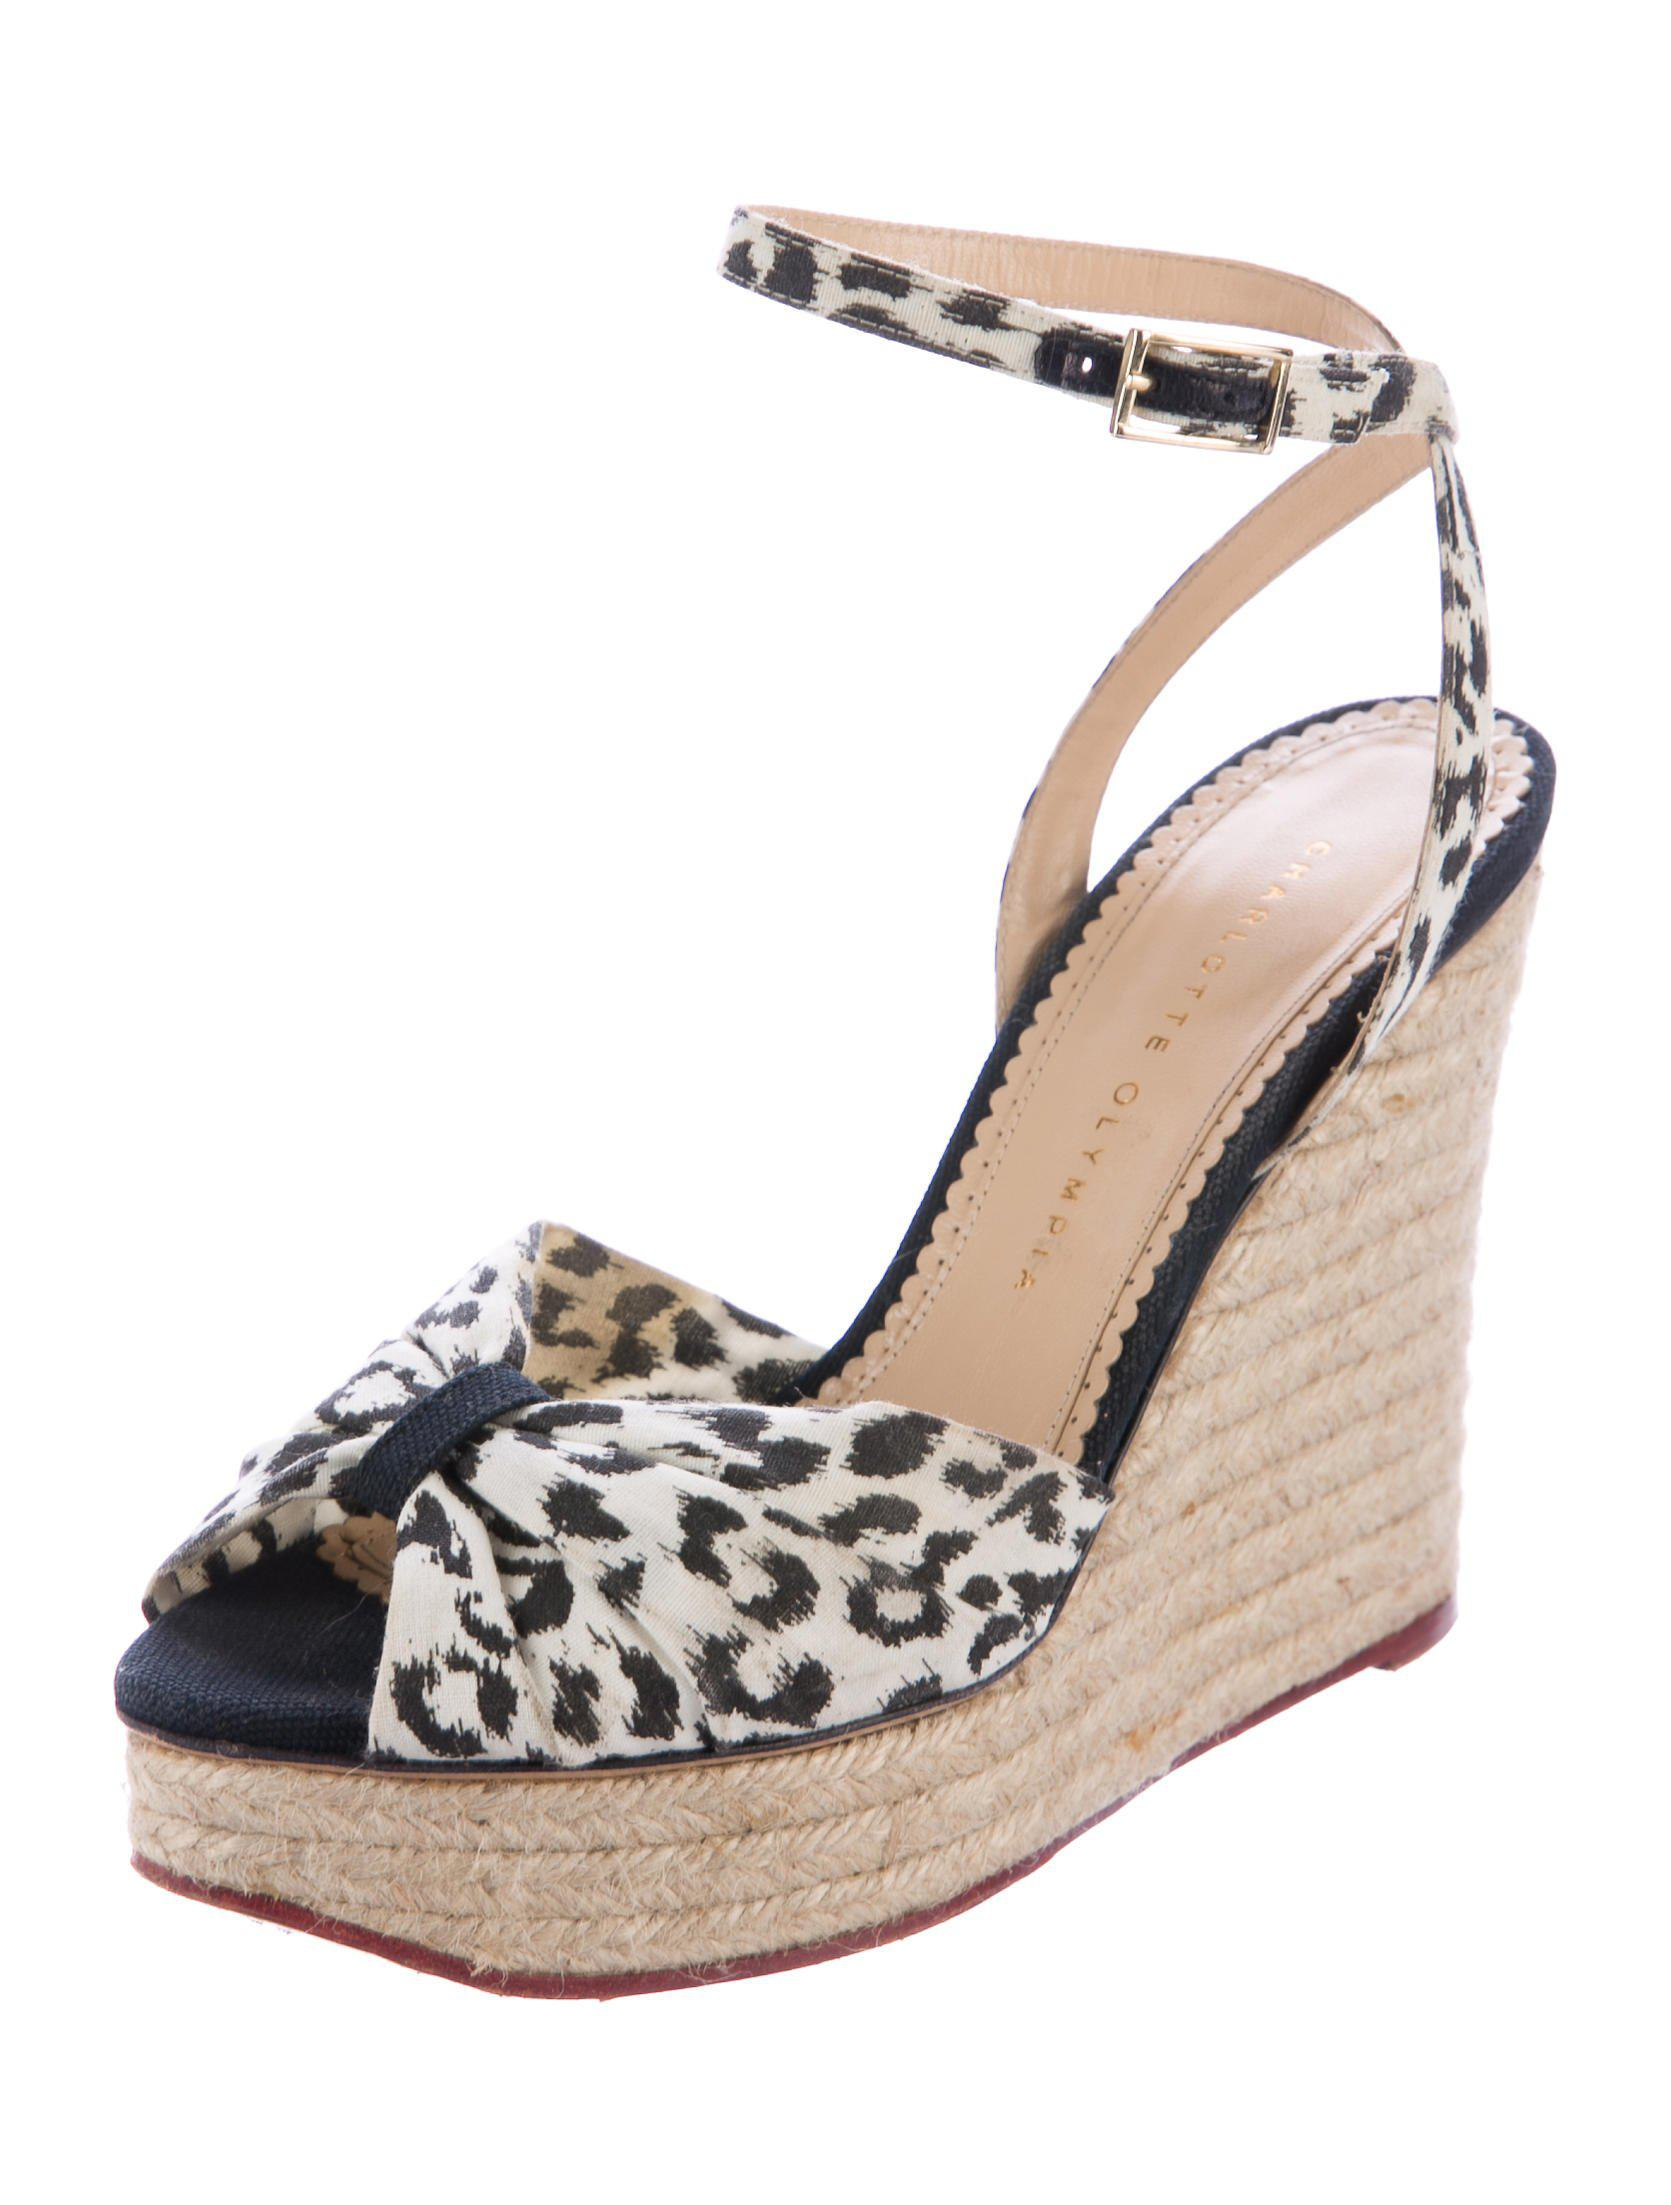 44de5d646ee Lyst - Charlotte Olympia Melody Espadrille Wedges in White